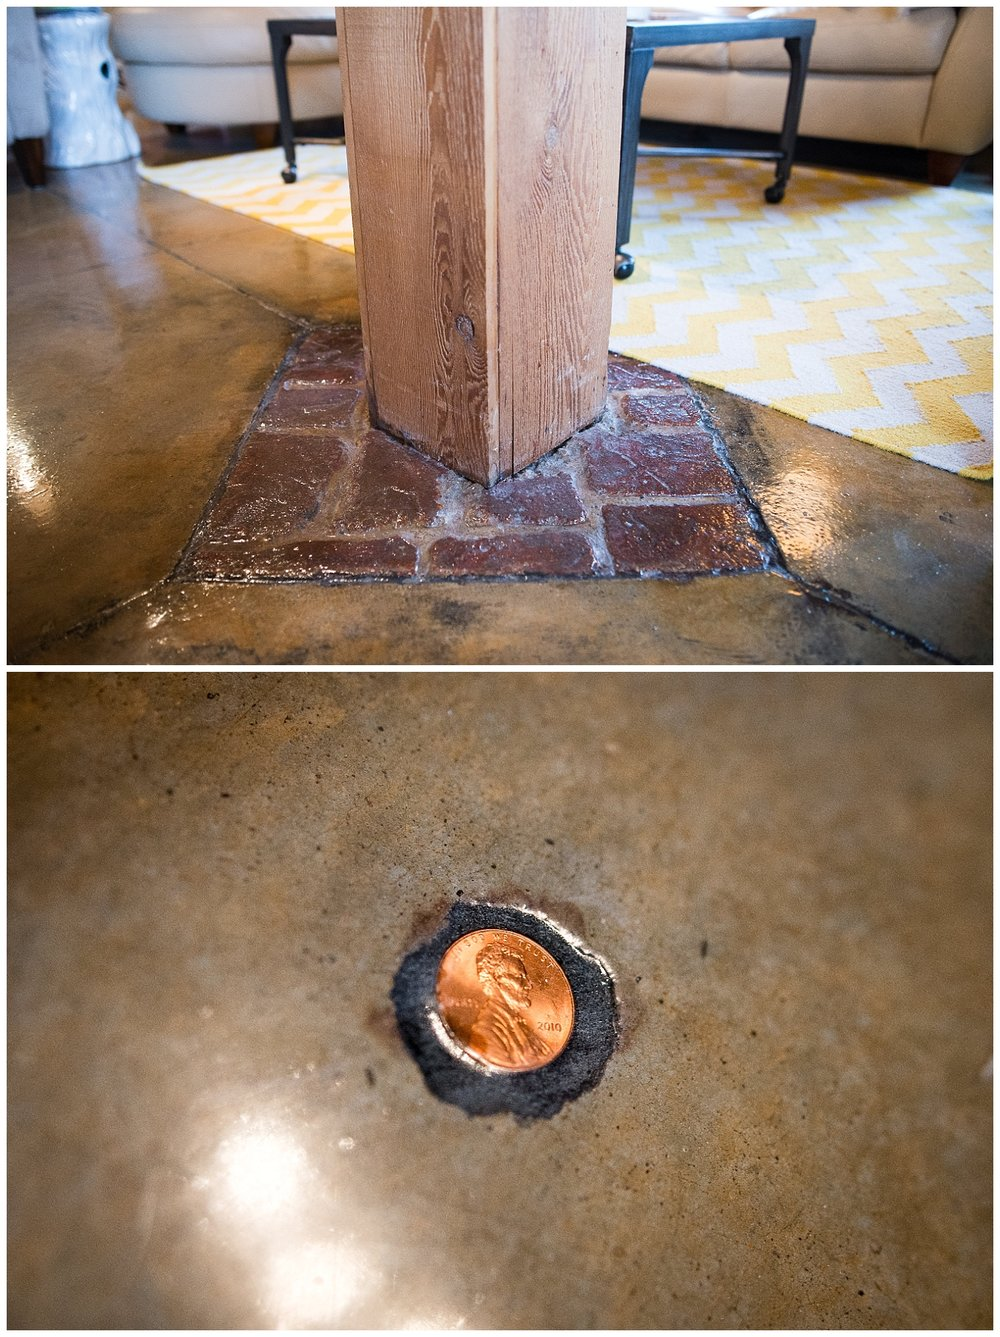 Nope, not brick.  Concrete.  A bubble appeared in the floor so they turned it into a feature by adding the penny.